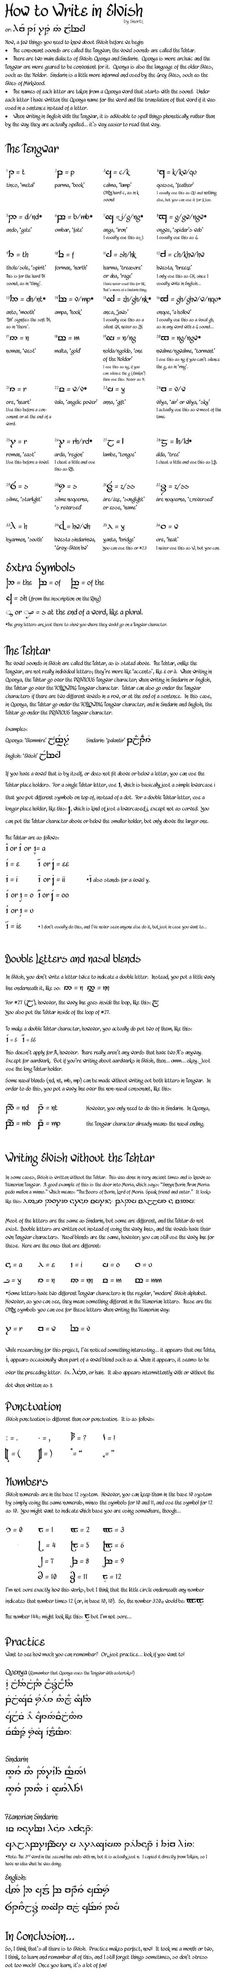 """TUTORIAL: How to write in Elvish. Also, check out a lovely book called """"The Languages of Tolkien's Middle Earth"""". It explains elvish (Sindarian and Quenya), Dwarvish, and others. Written by Ruth S. Noel.:"""